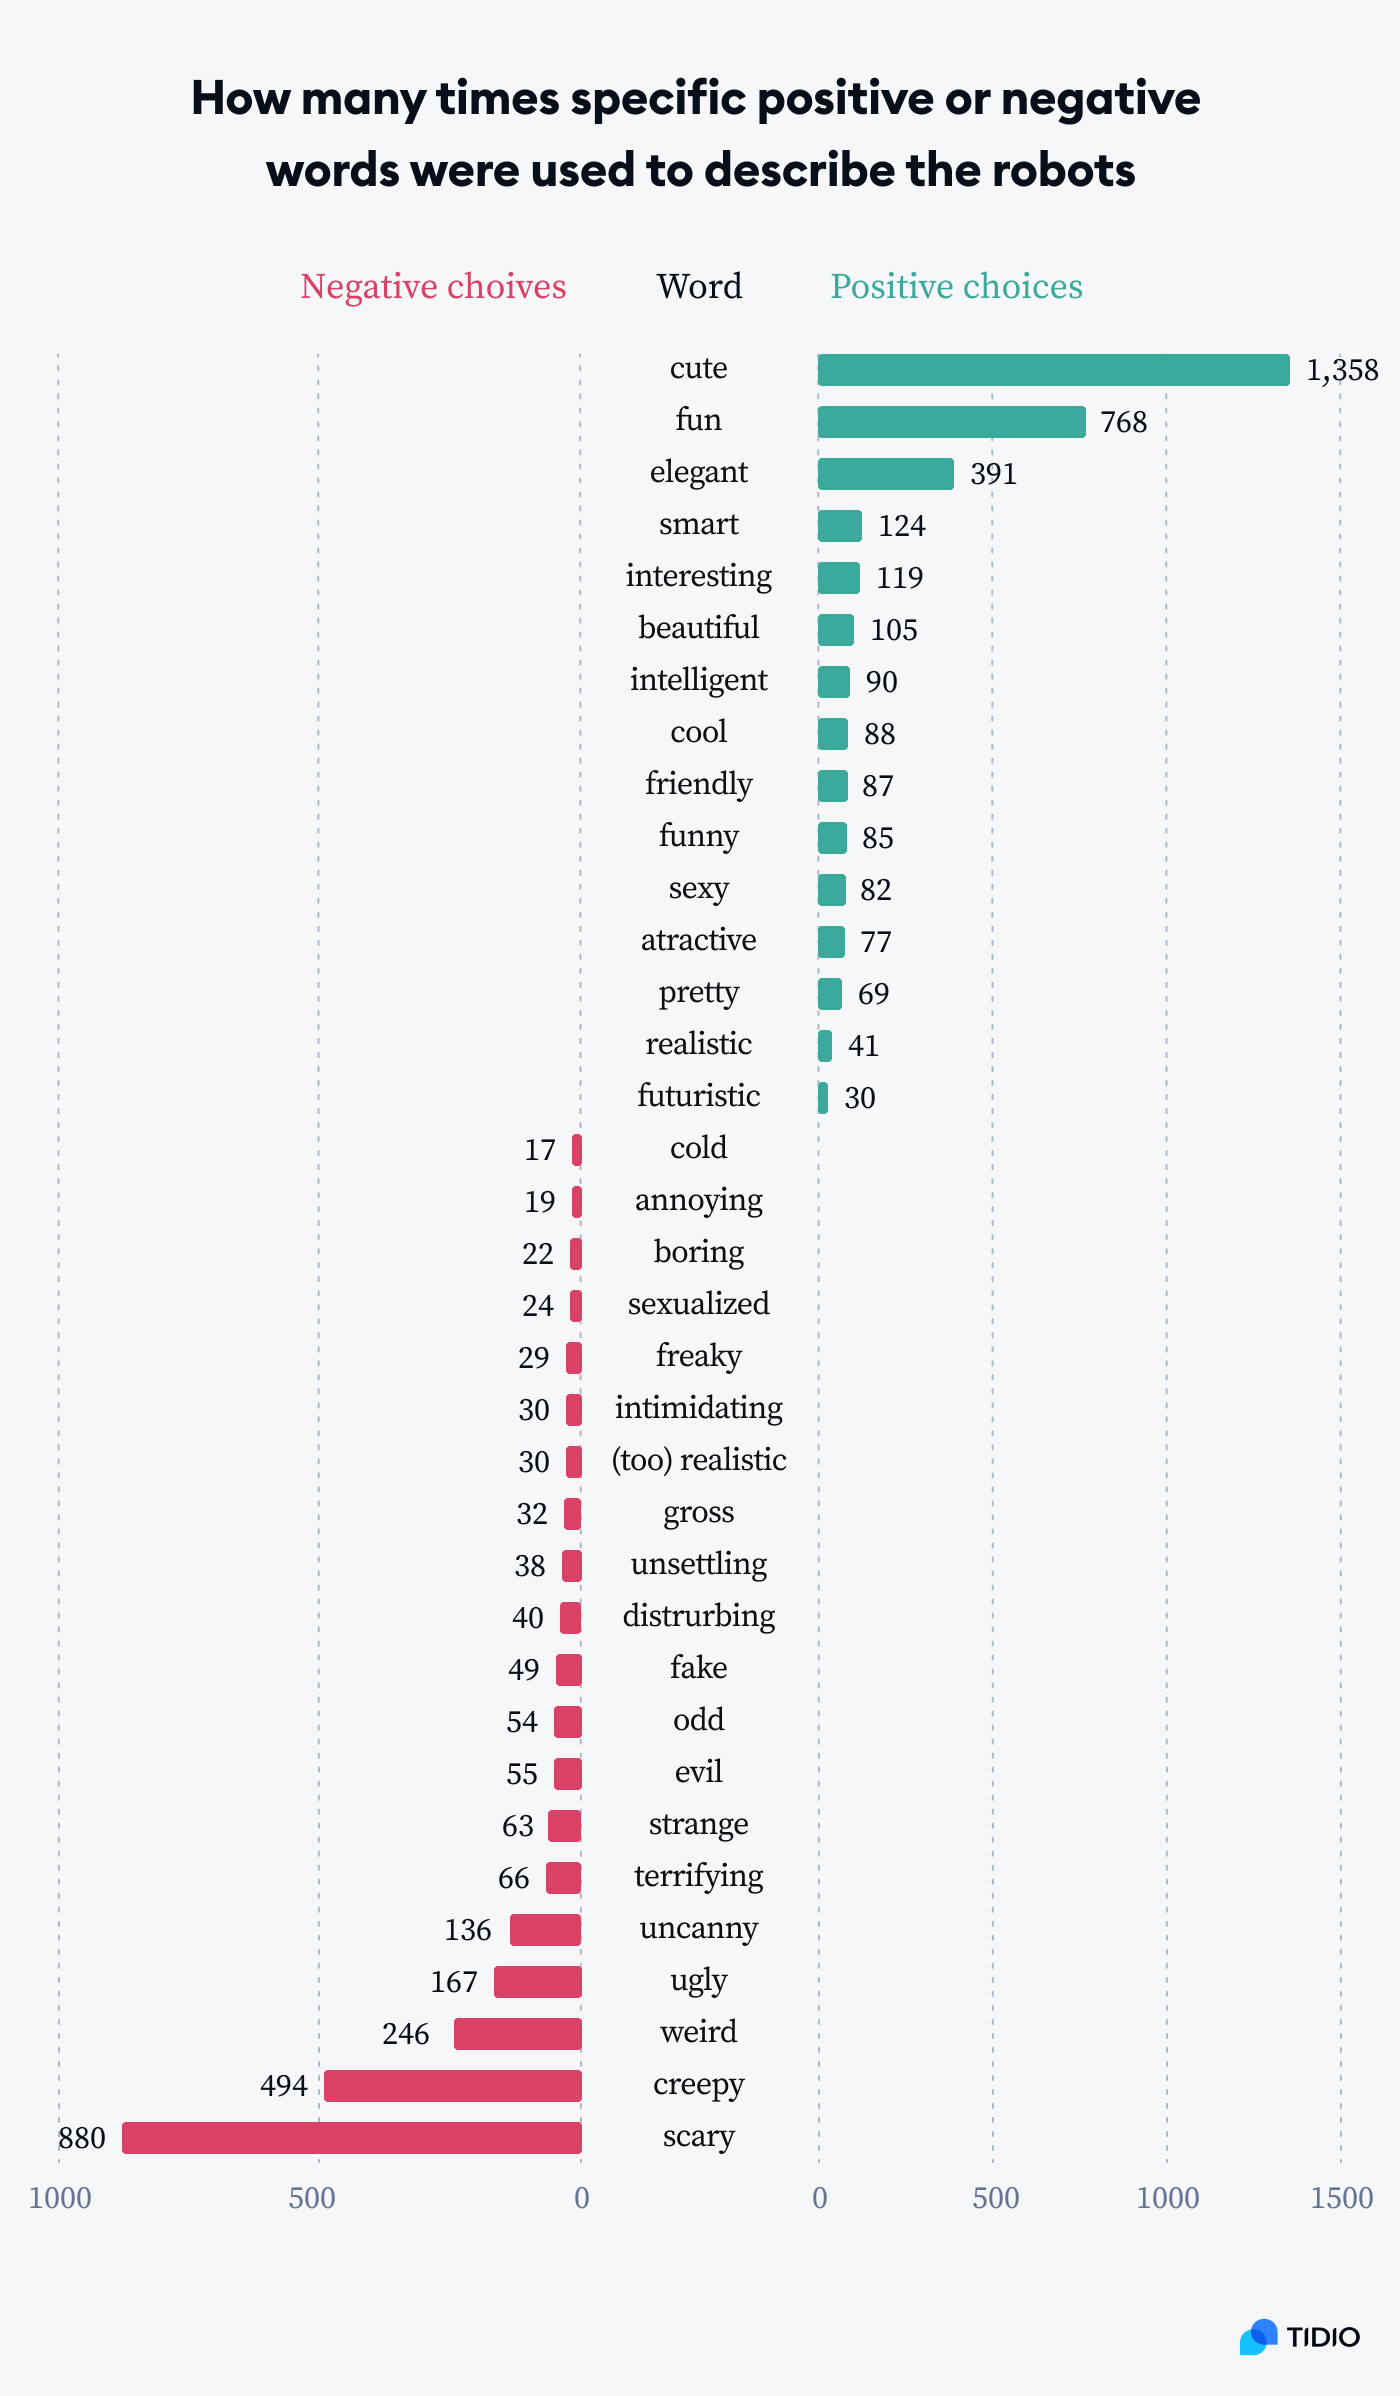 Graph presenting how many times specific positive or negative words were used to describe the robots